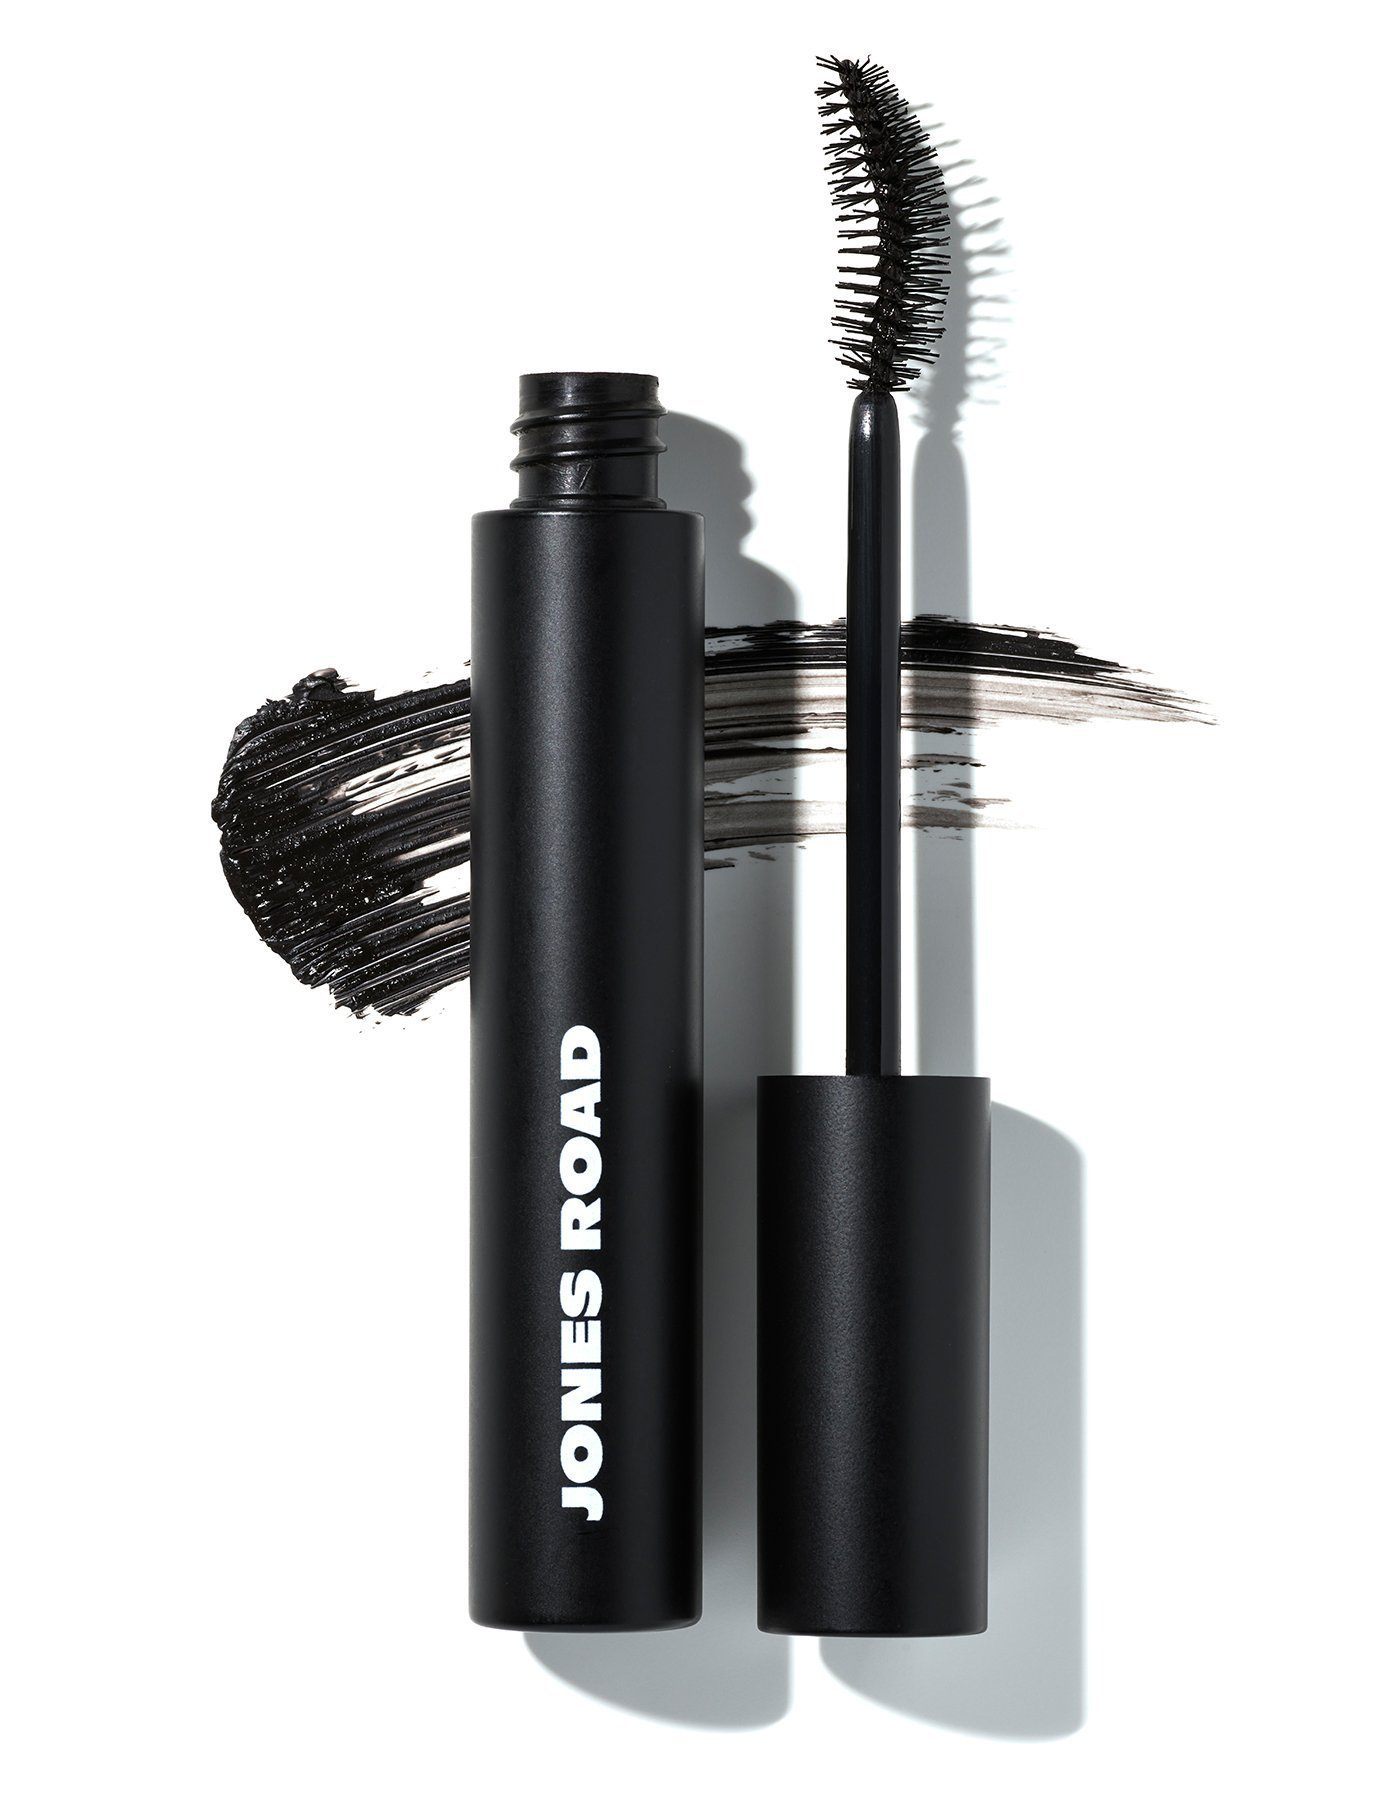 Jones Road Bobbi Brown